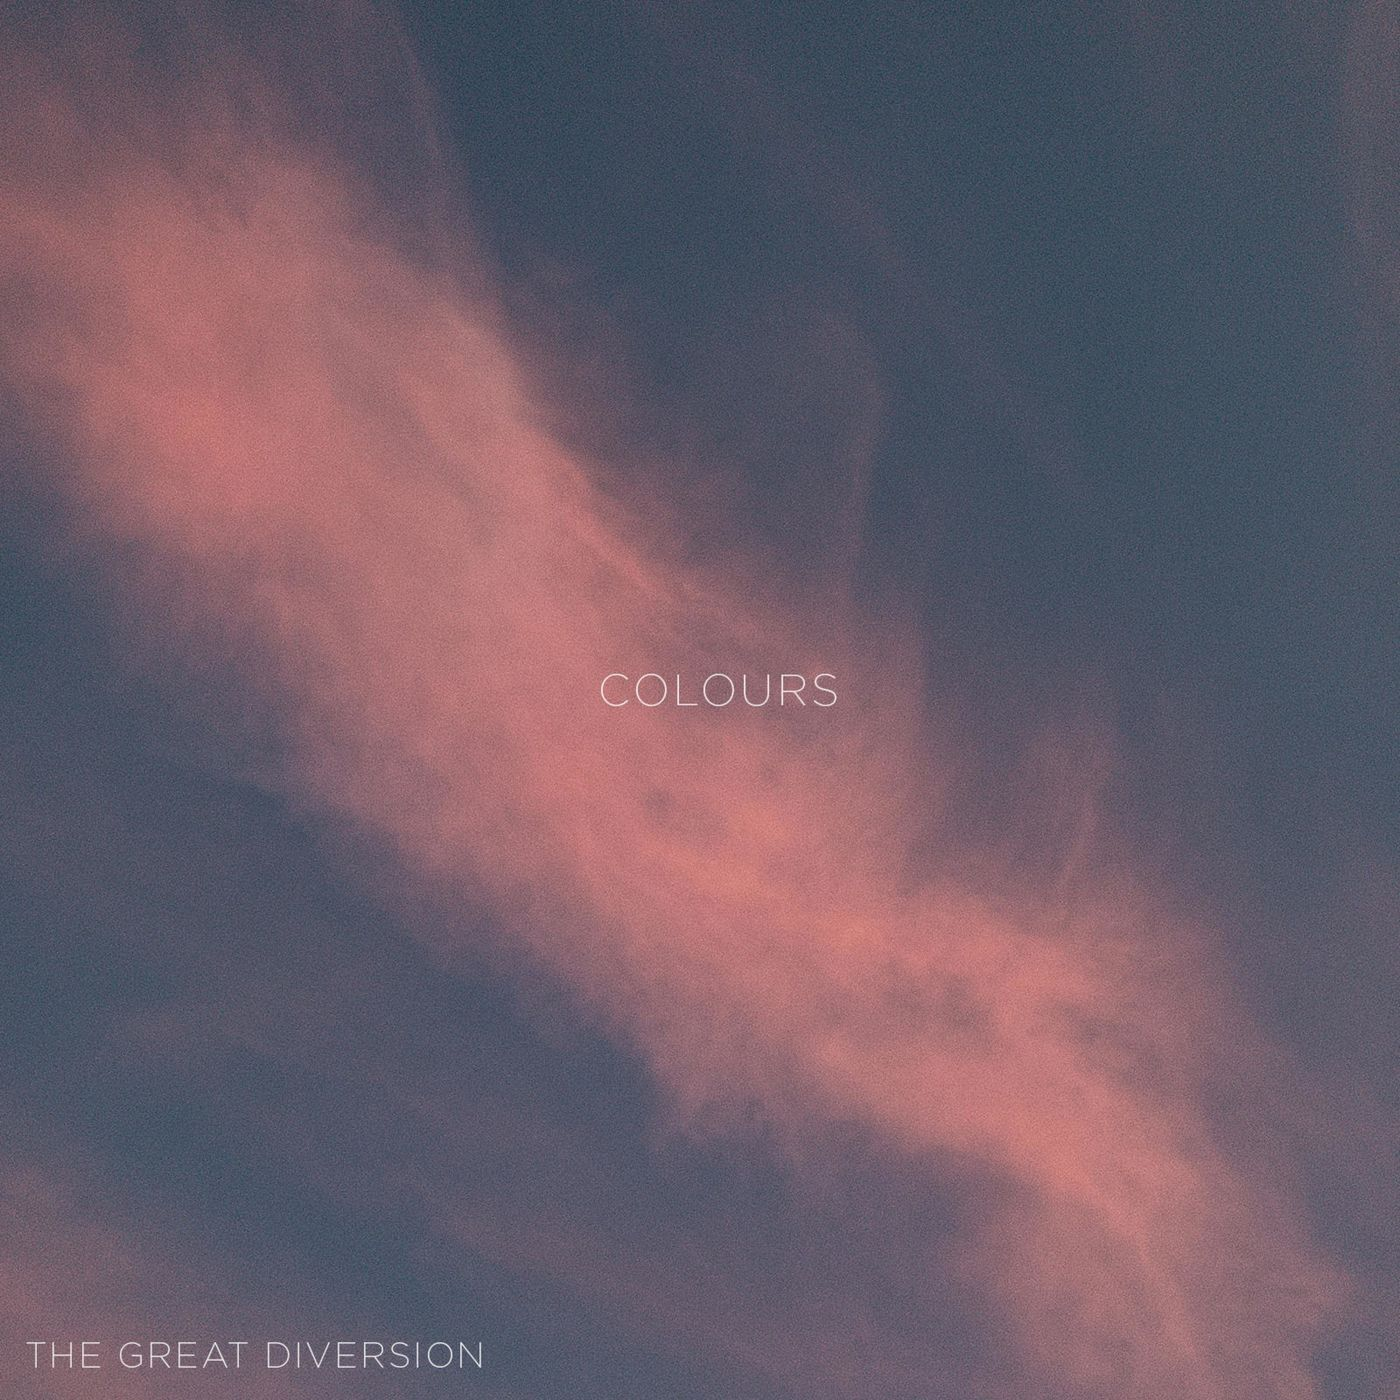 The Great Diversion - Colours [single] (2020)